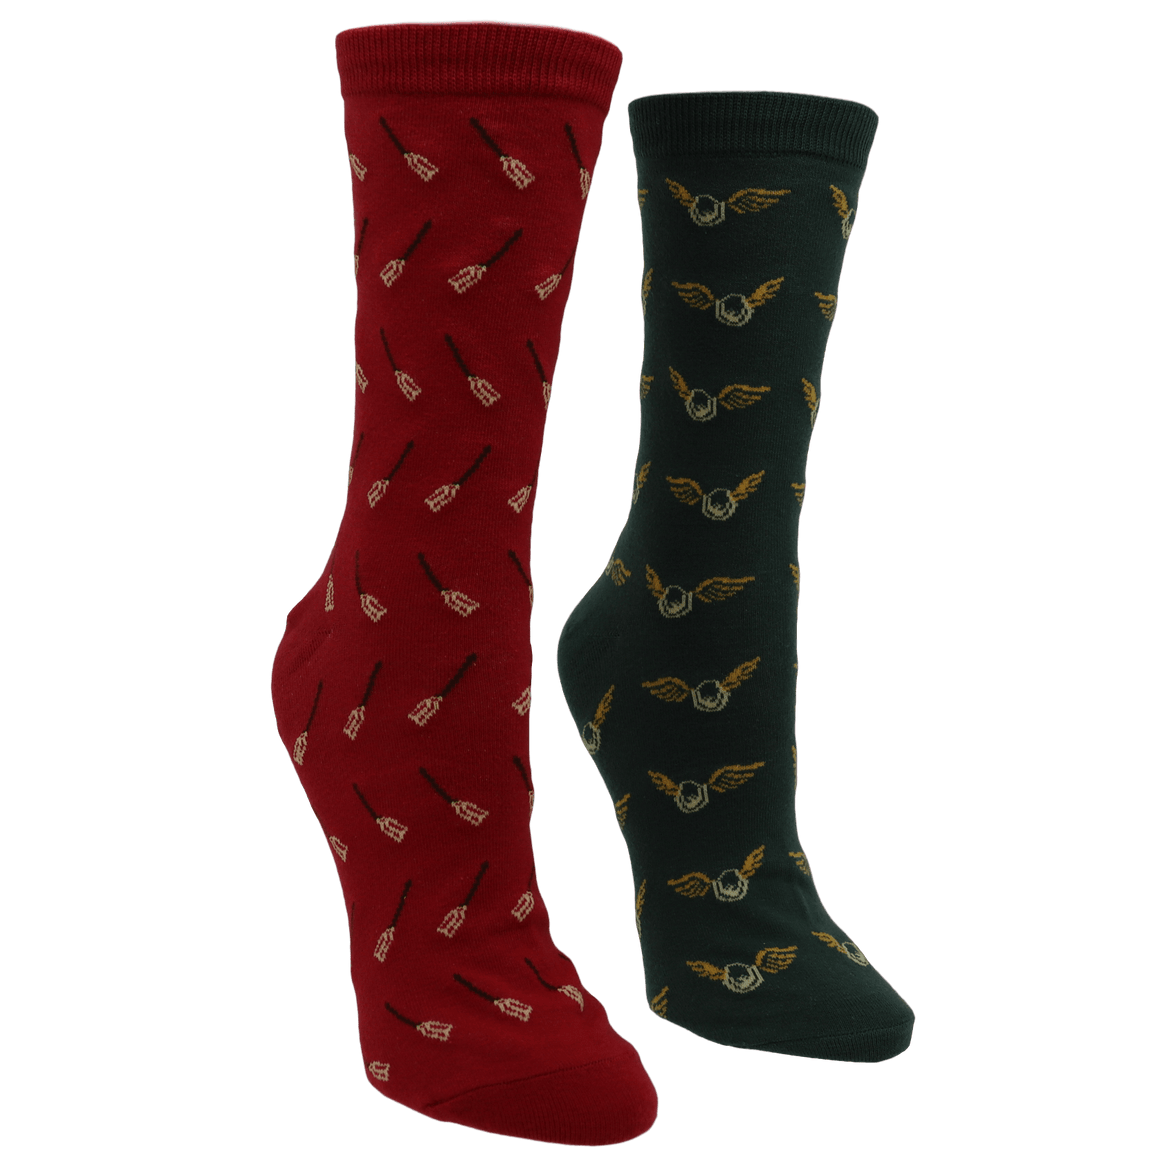 Harry Potter Dobby Christmas Socks - Small by Out of Print - The Sock Spot